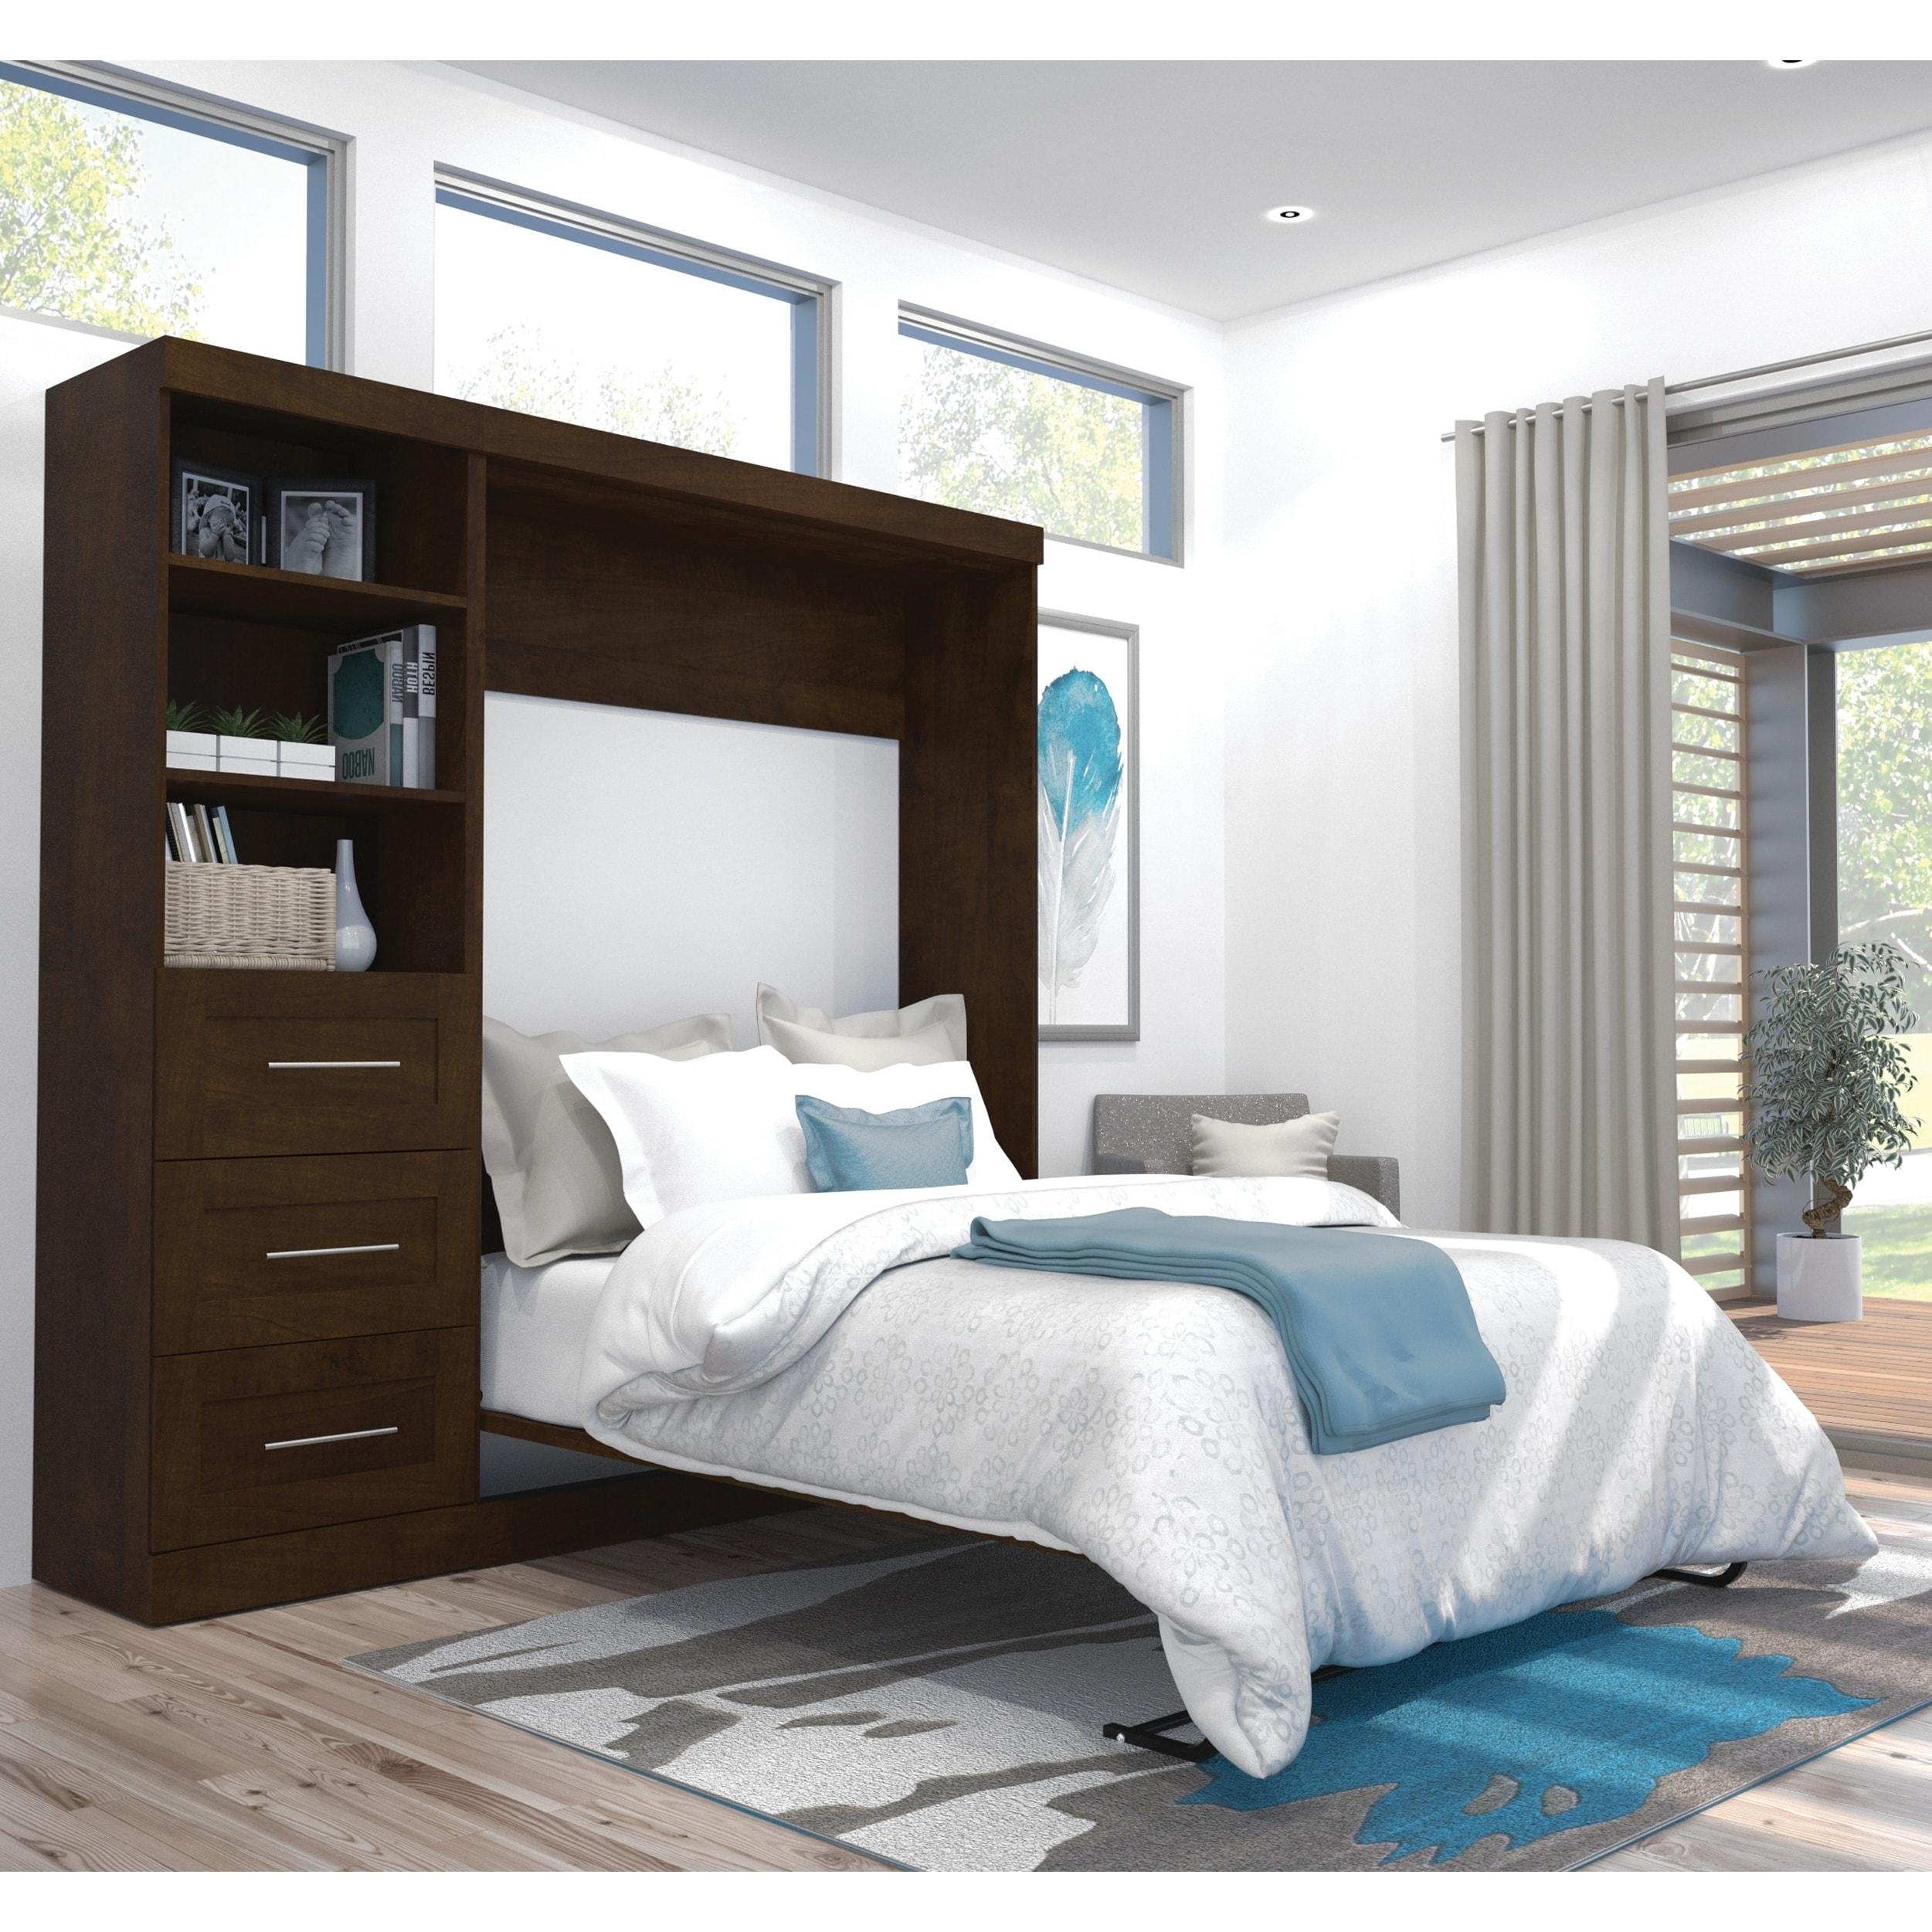 Shop Pur By Bestar 84 Inch Full Size Wall Bed Kit On Sale Overstock 11607891